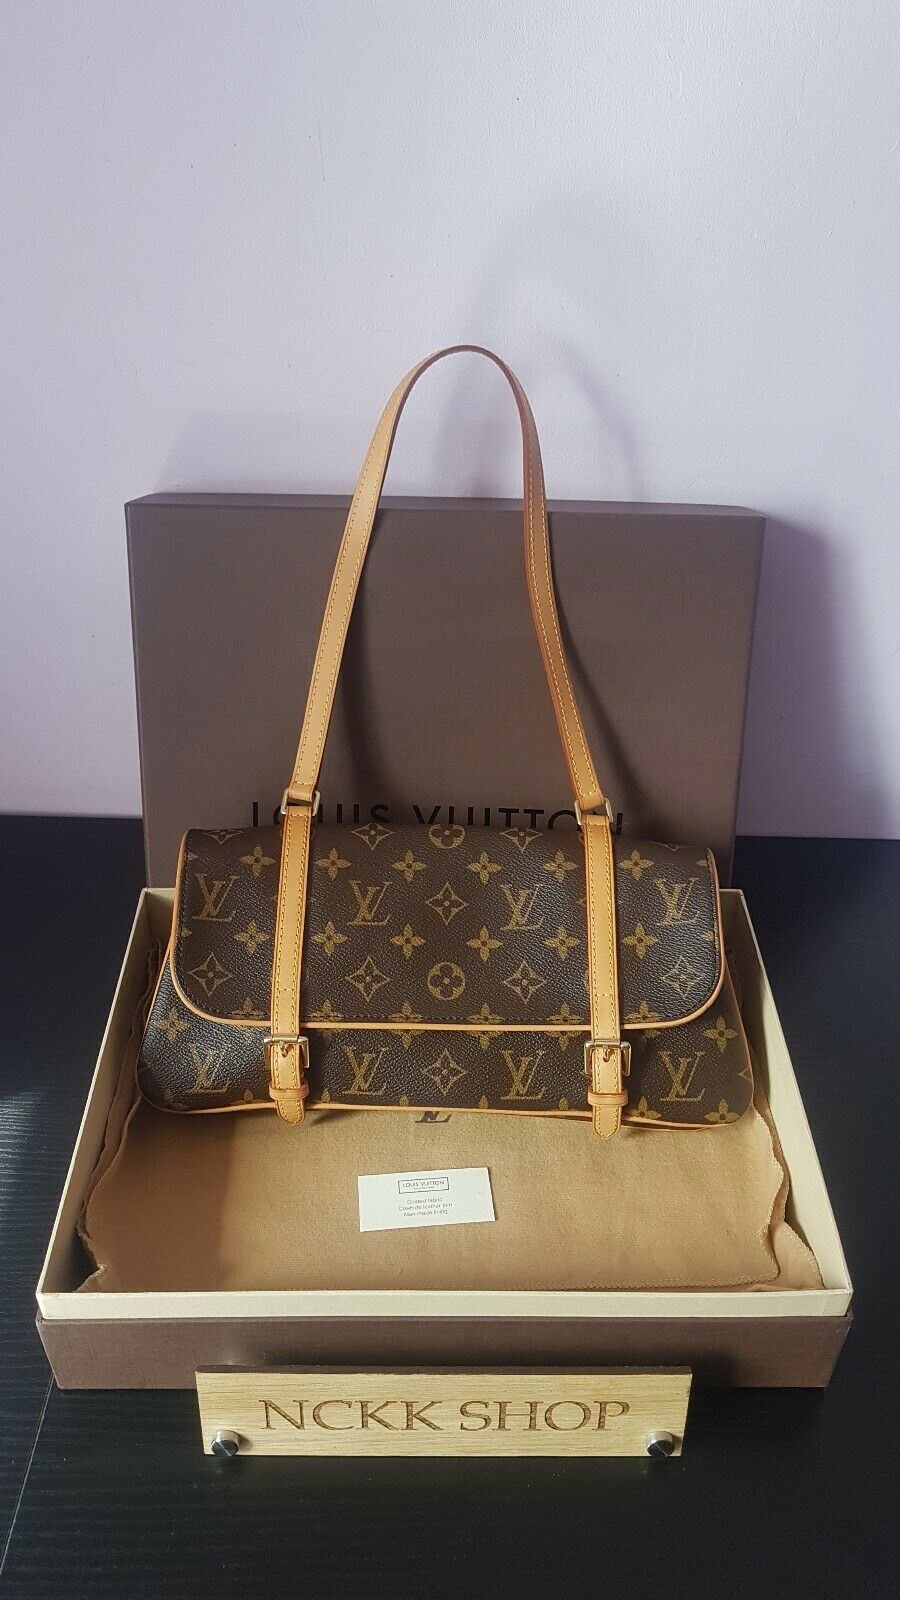 Authentic Louis Vuitton Marelle Monogram Canvas Schultertasche - 605.07,Kaufpreis 605,07,datum 01.07.2020 22:12:38,Website quoka.de